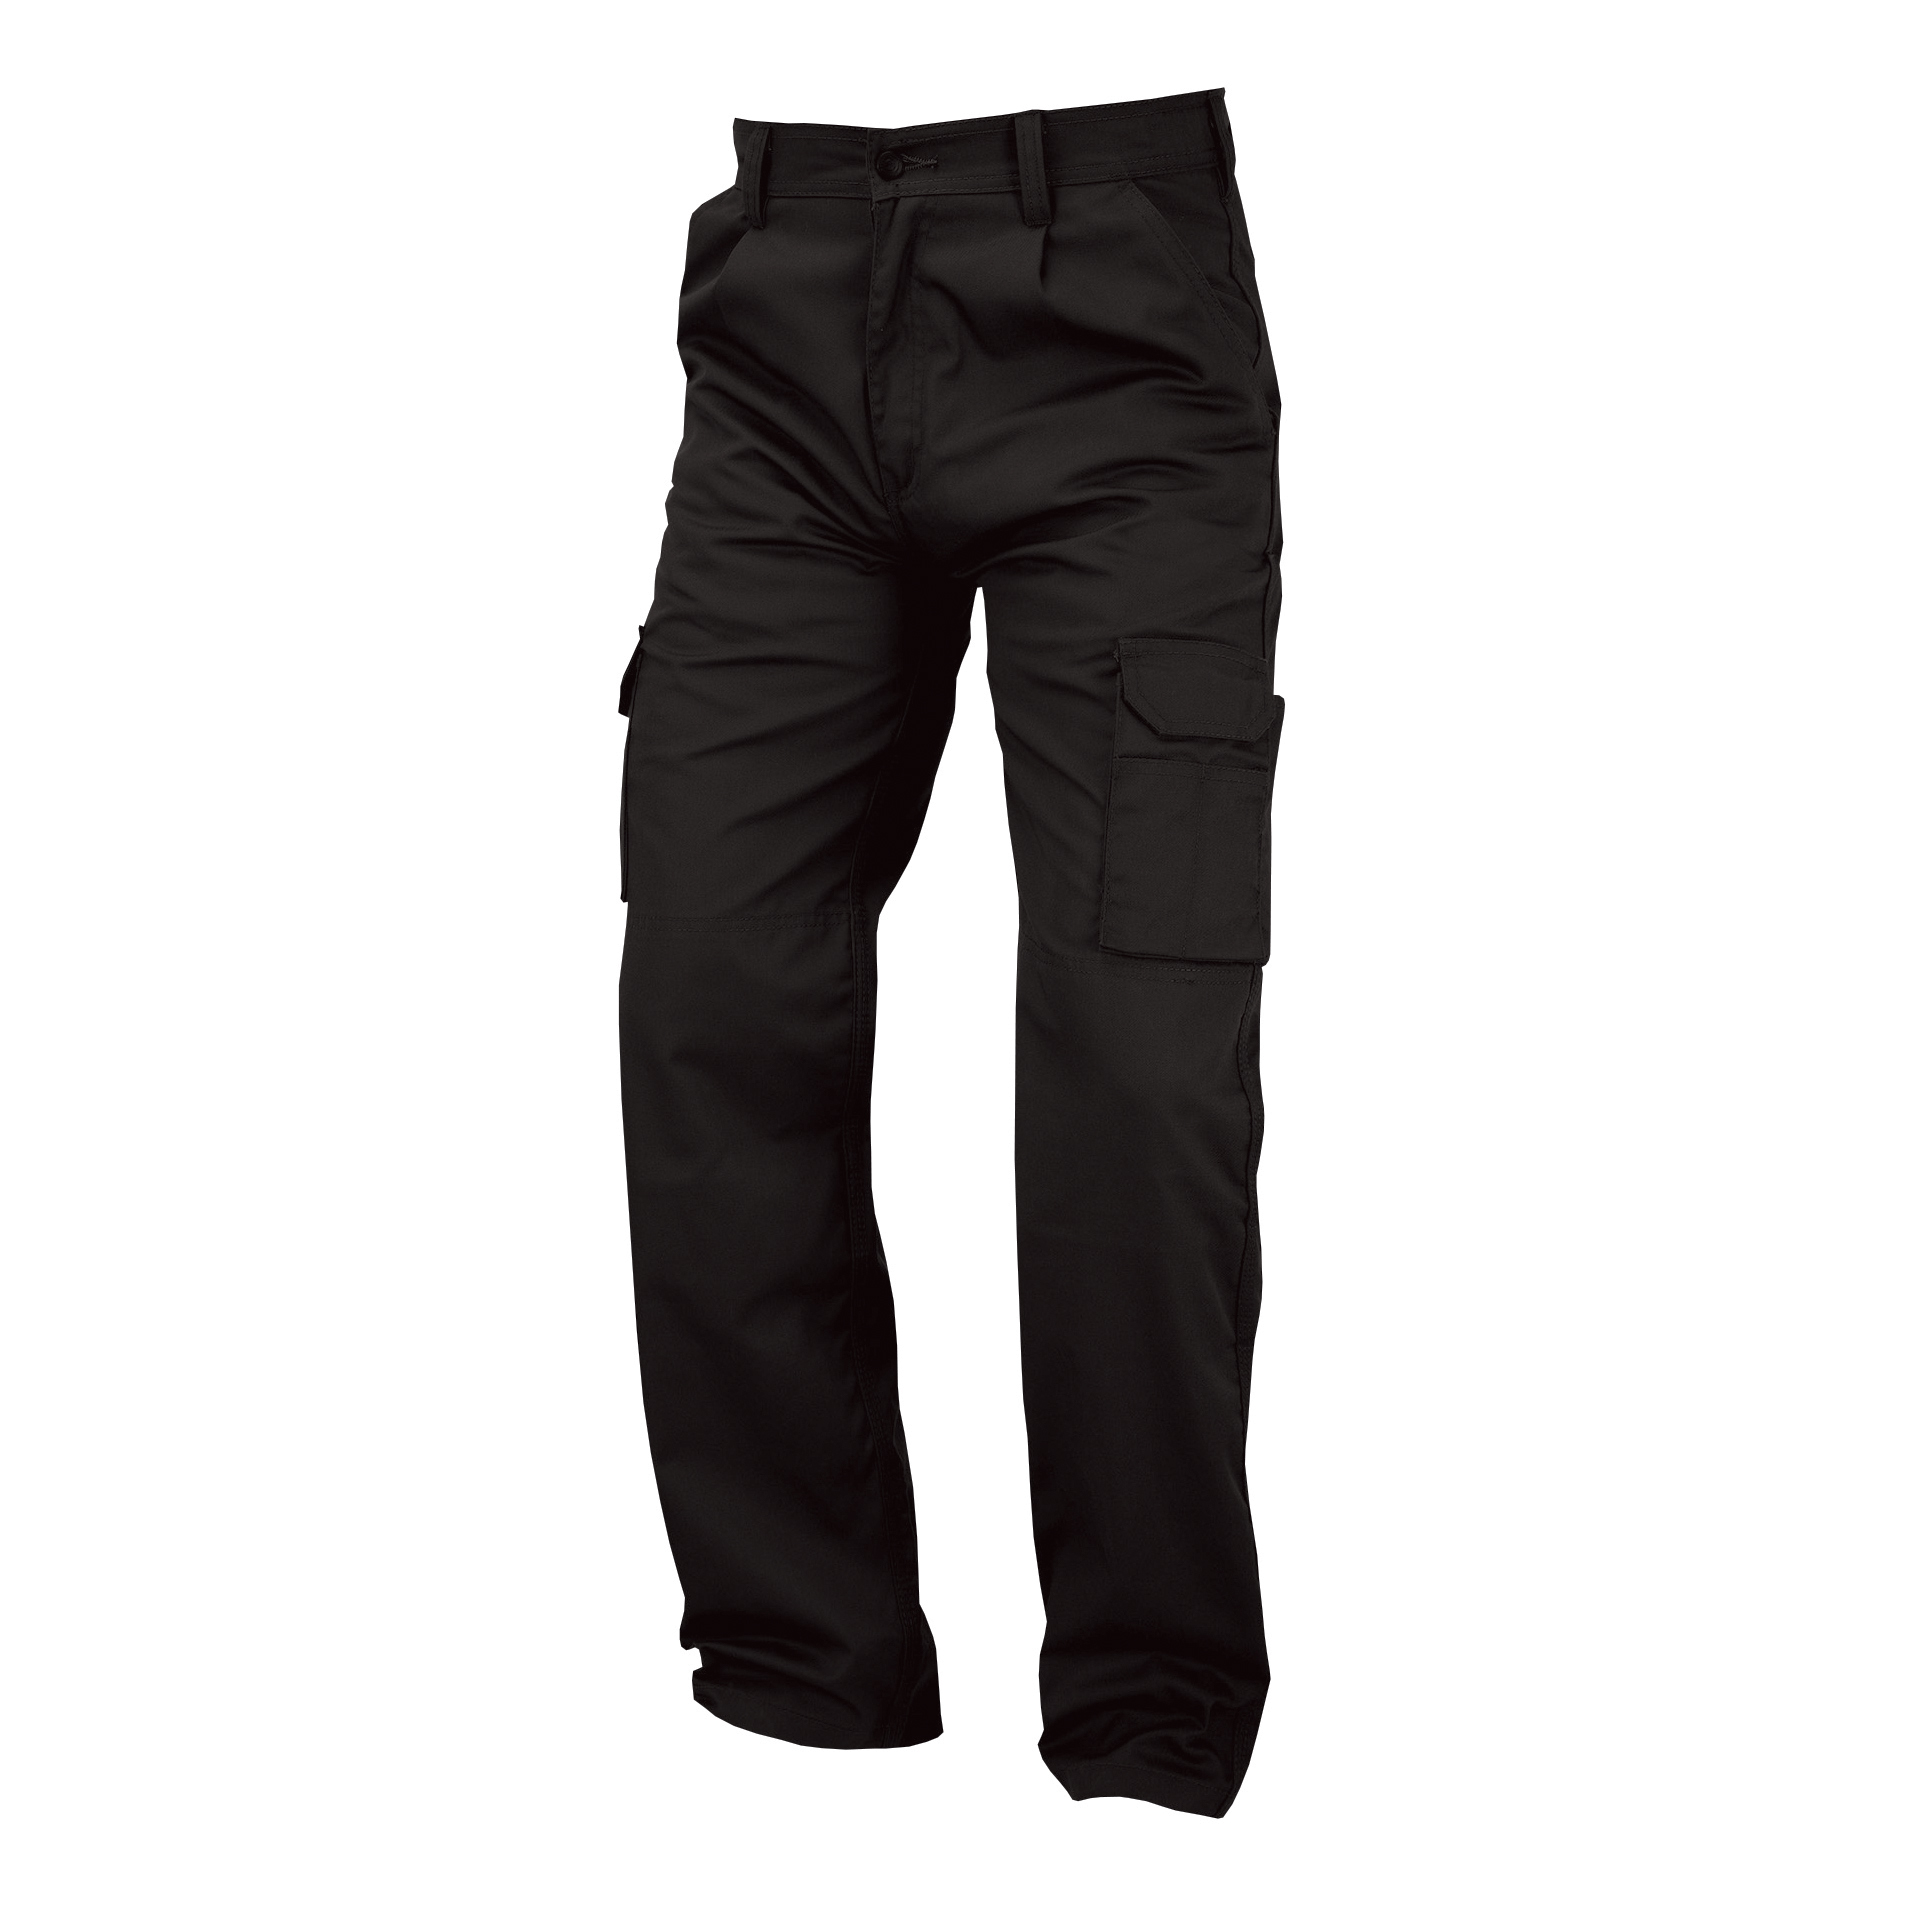 Combat Trouser Multi-functional Waist 46in Leg 29in Black Ref PCTHWBL46S *Approx 3 Day Leadtime*